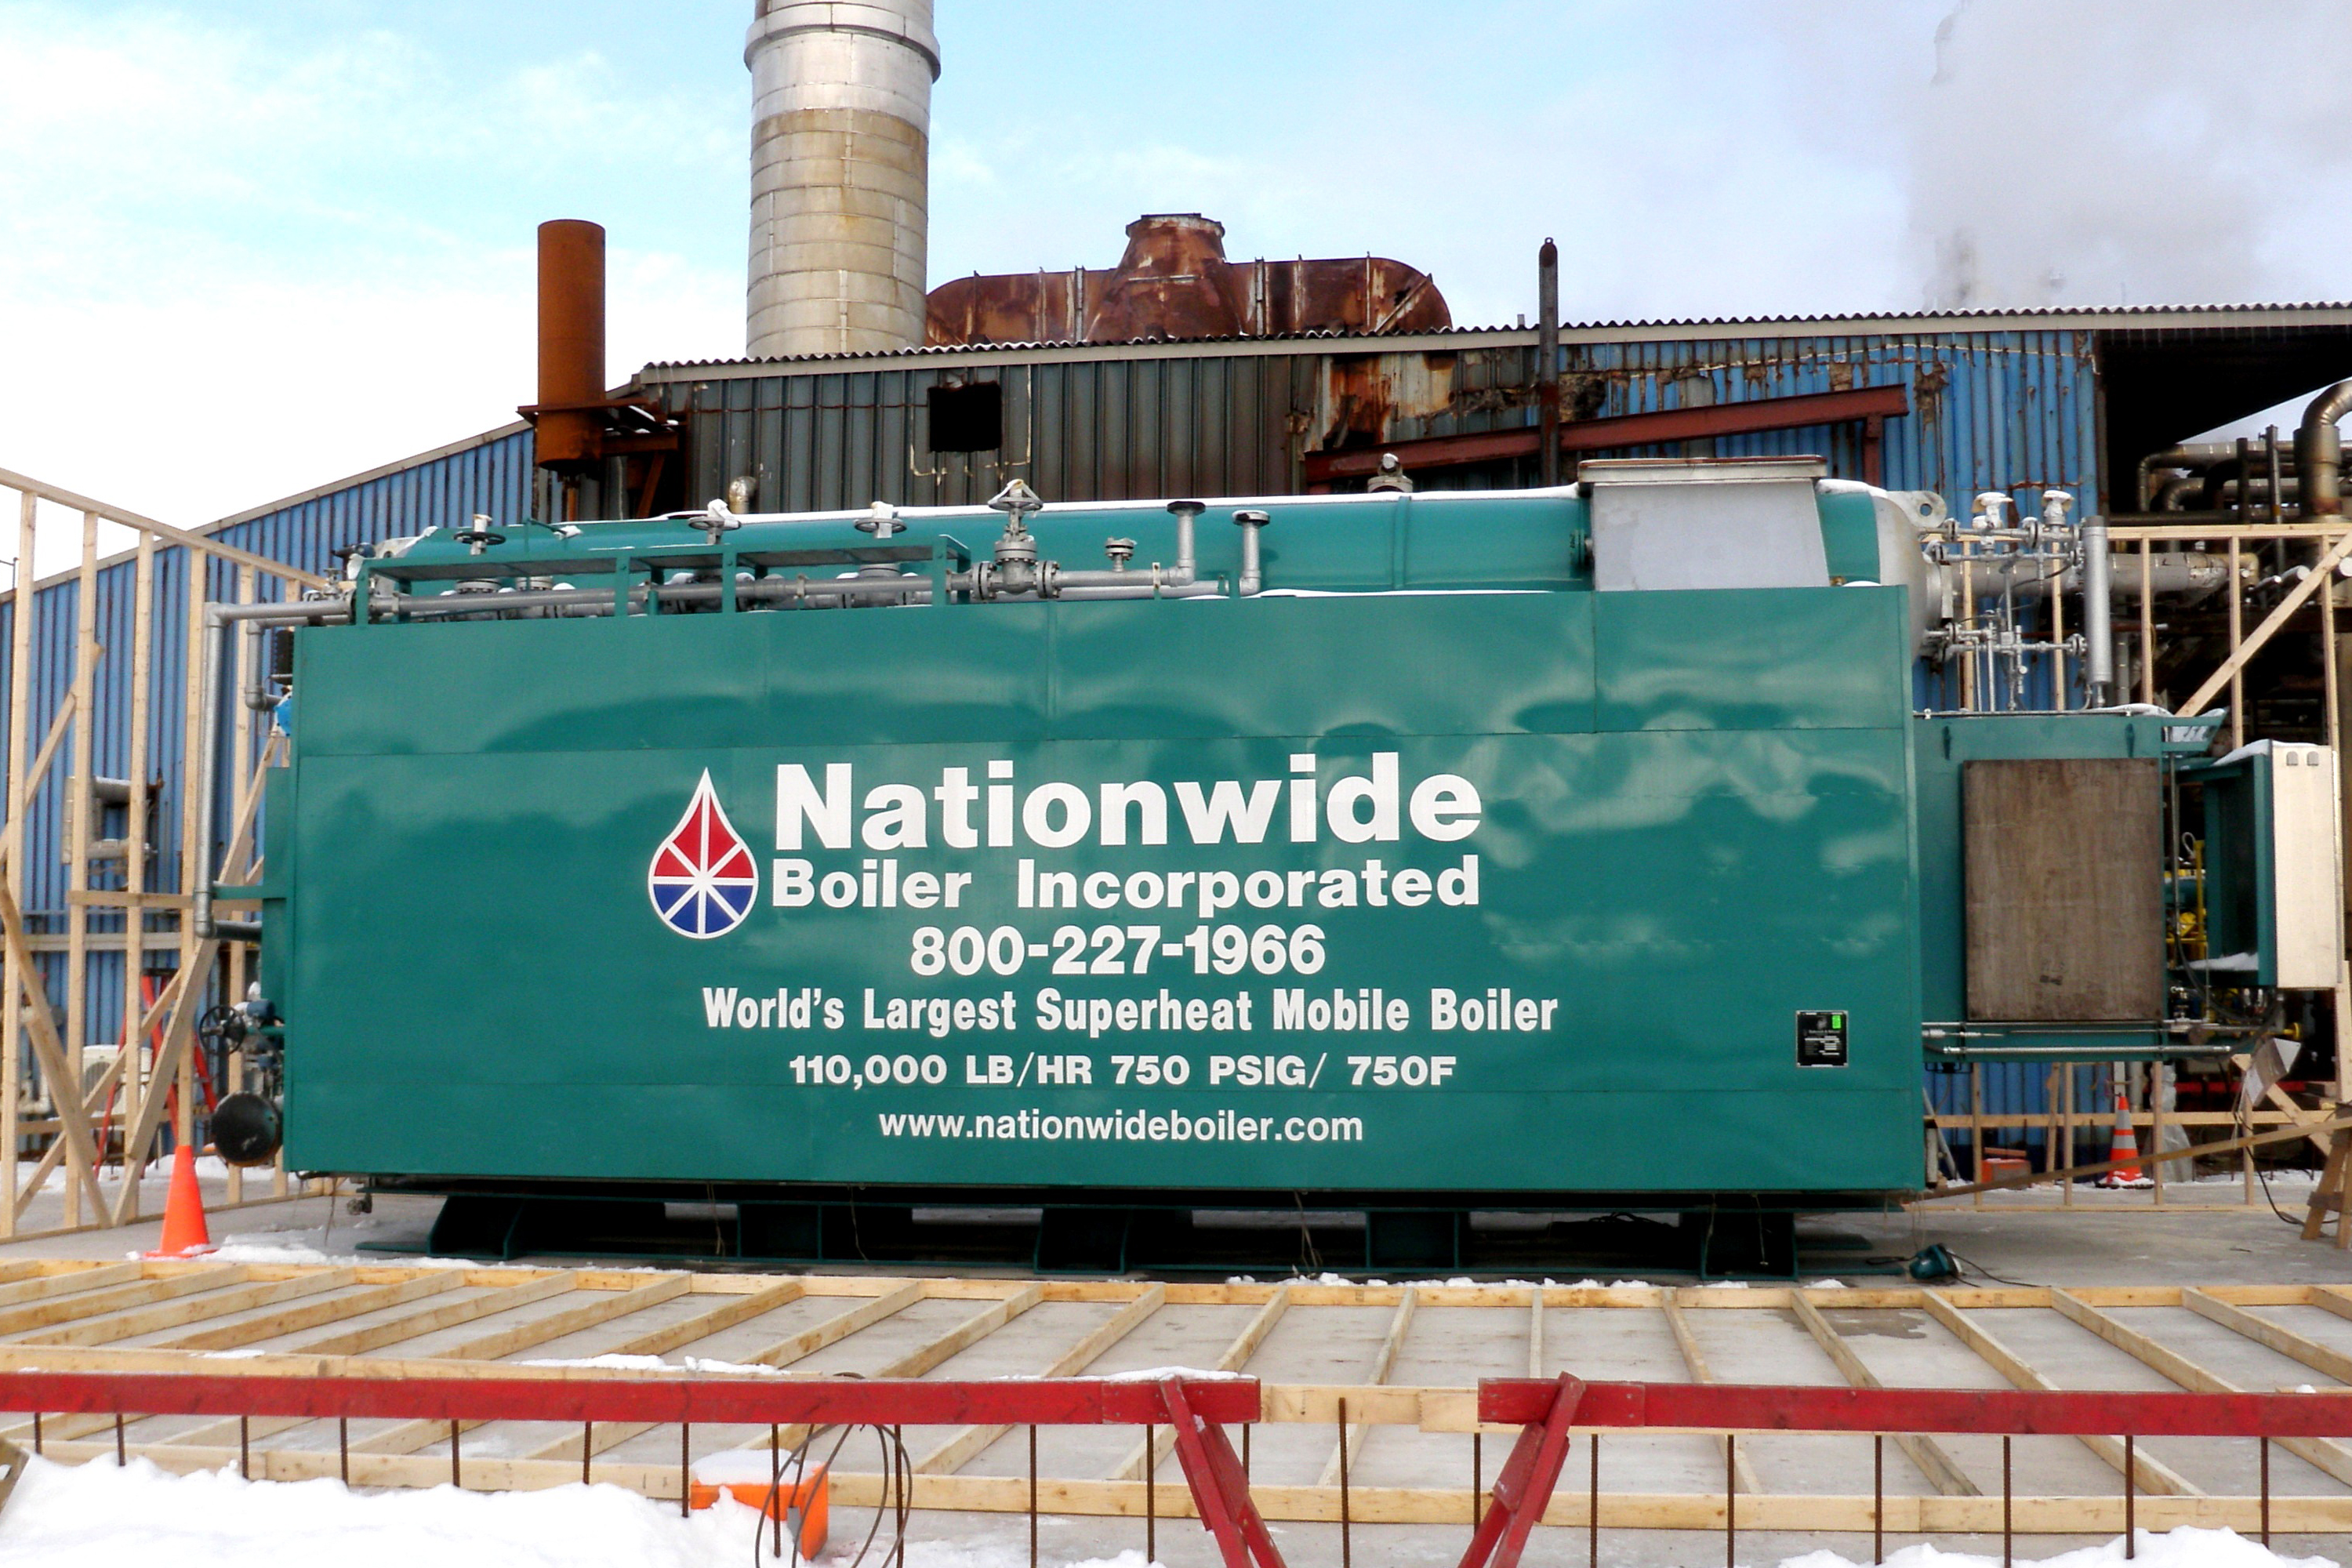 New 110,000 lb/hr Superheat Boiler Provides Increased Steam Capacity ...